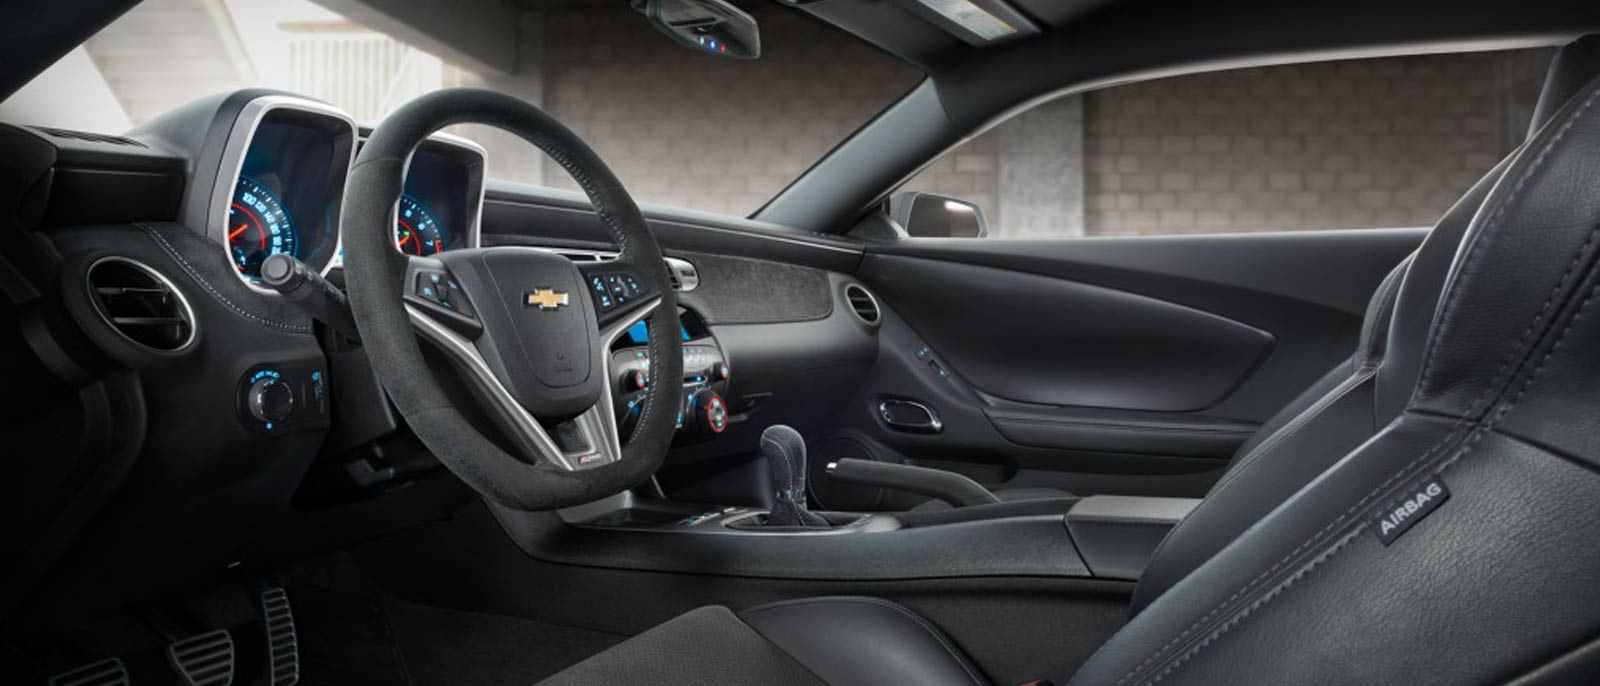 2015 Chevy Camaro Z/28 Interior ...